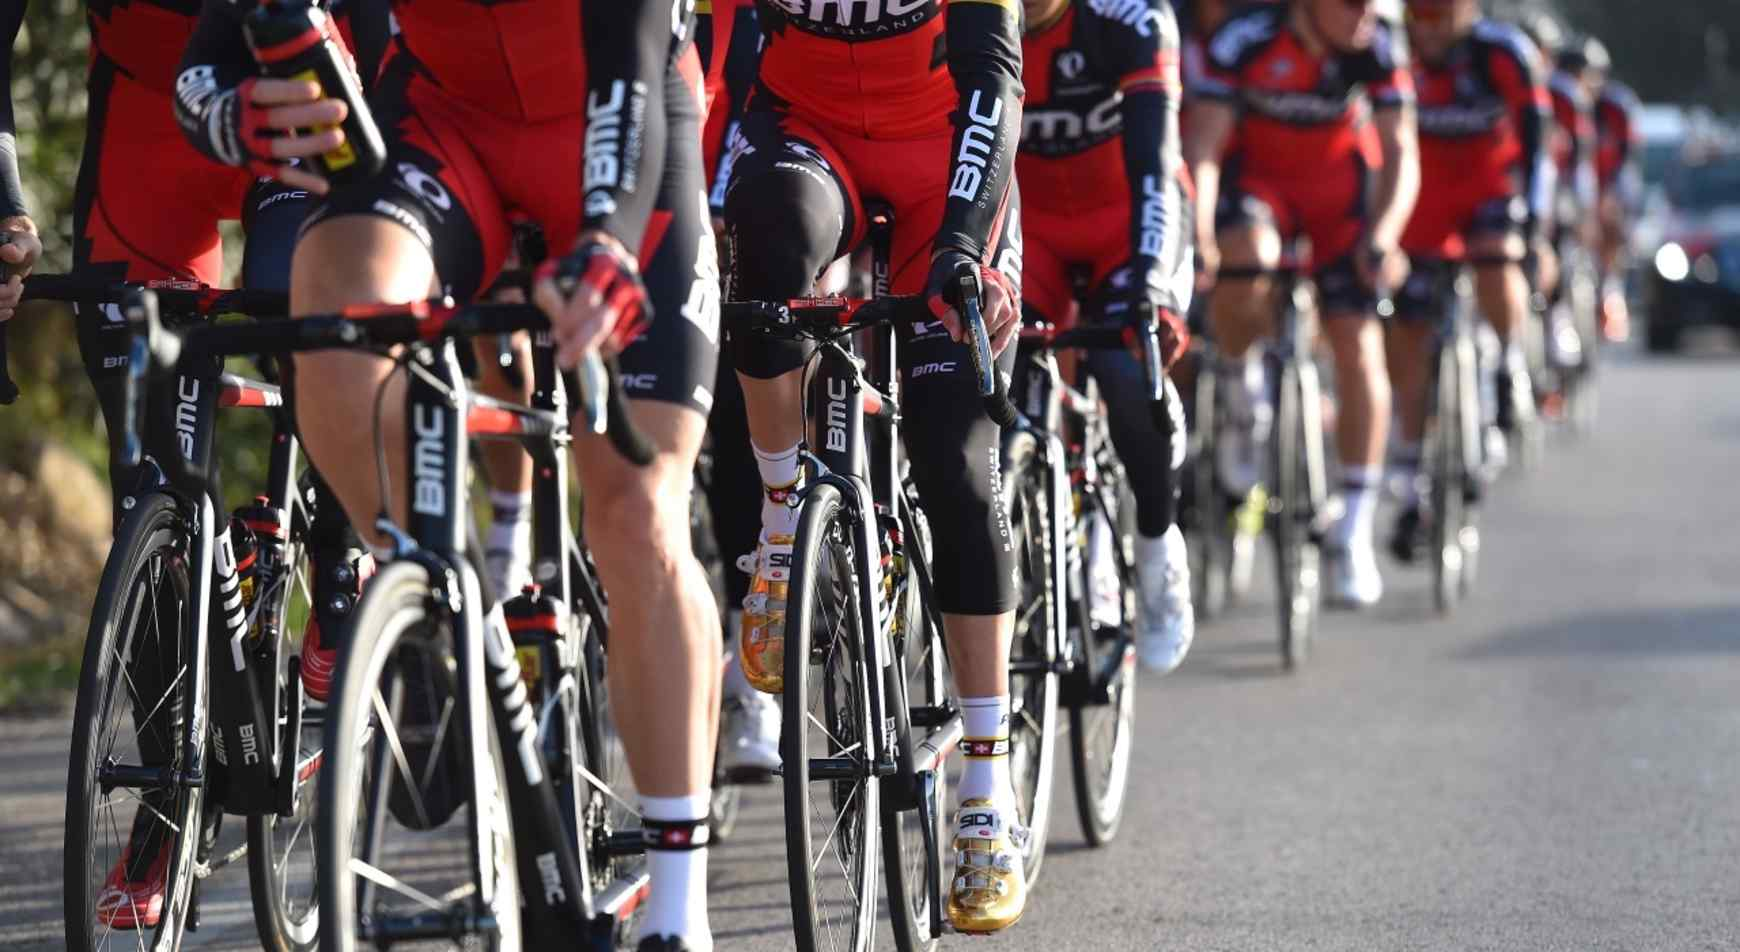 Cycling: BMC Racing Team 2016  Illustration Illustratie / Sidi Shoe Chaussure Schoen / SANCHEZ Samuel (ESP)/ Continental Tires Pneus Banden /  Equipe Ploeg /(c)Tim De Waele